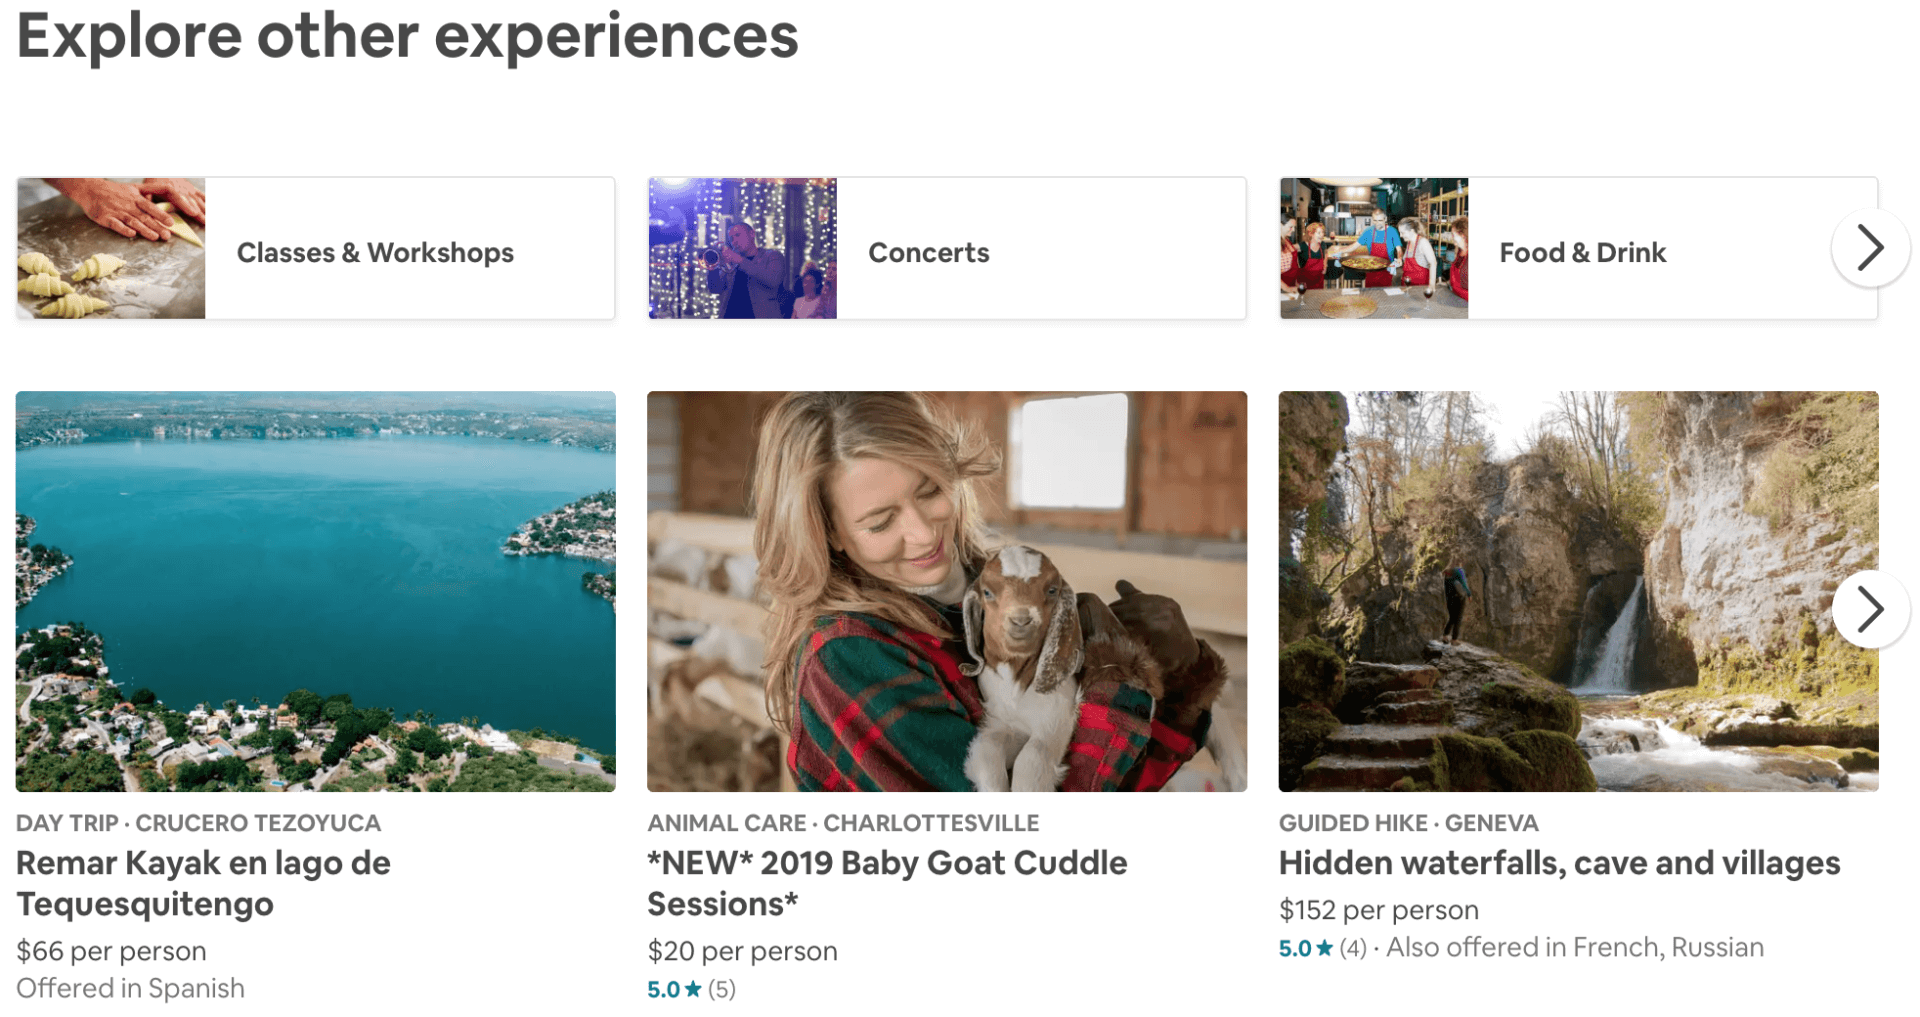 Airbnb's new video strategy lets experience and branding drive profits | DeviceDaily.com